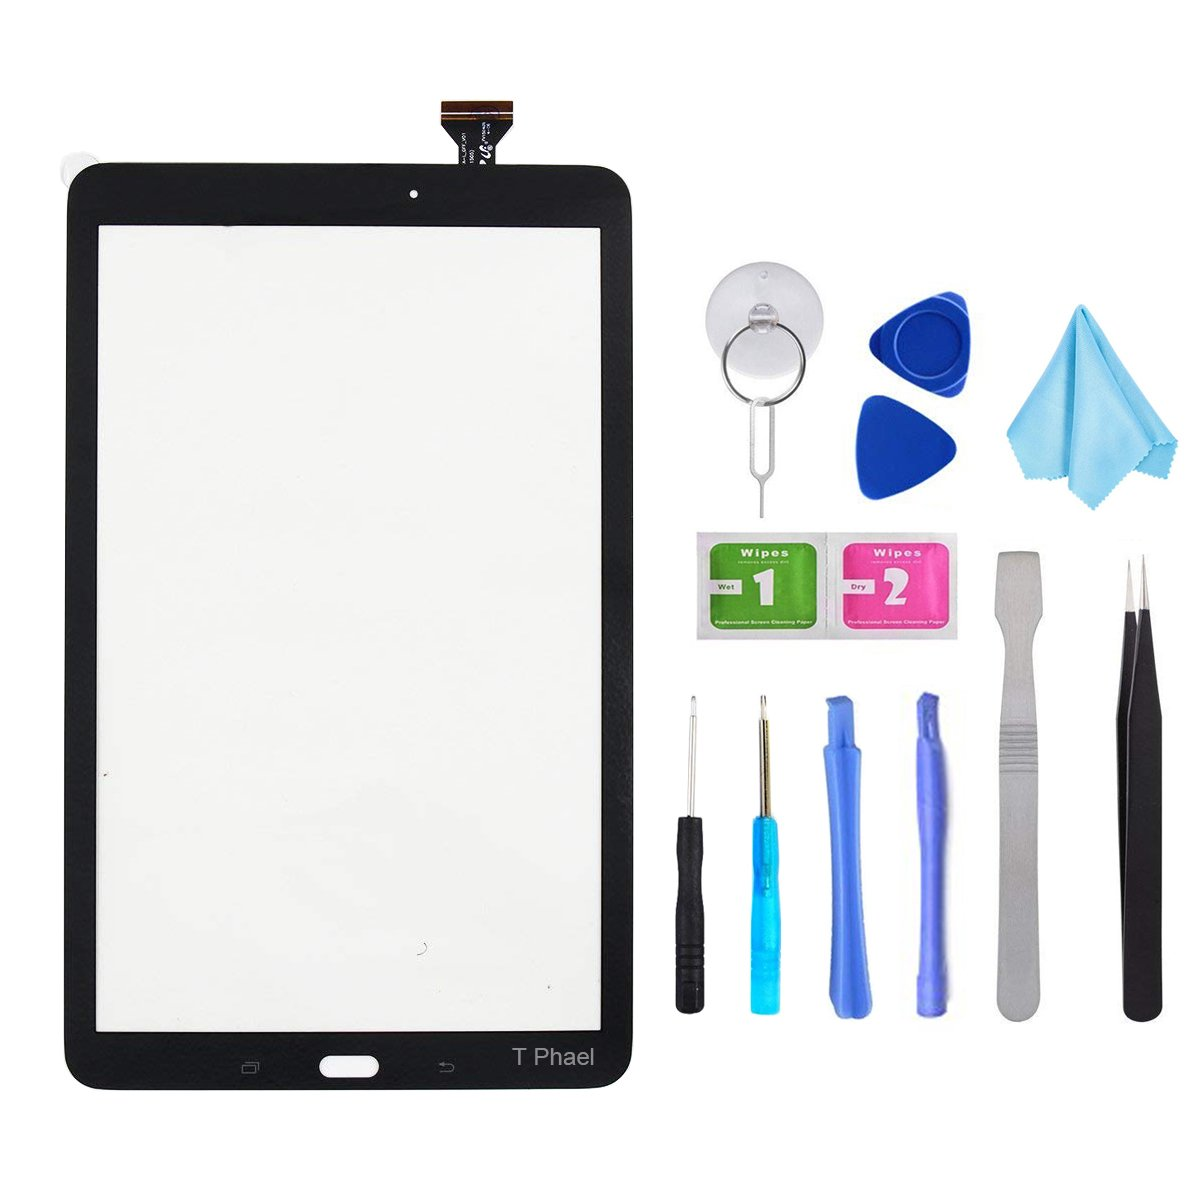 Black Touch Screen Digitizer for Samsung Galaxy Tab E 9.6'' - Glass Replacement for SM-T560 SM-T561 T560 T561(Not Include LCD) with Tools + Pre-Installed Adhesive